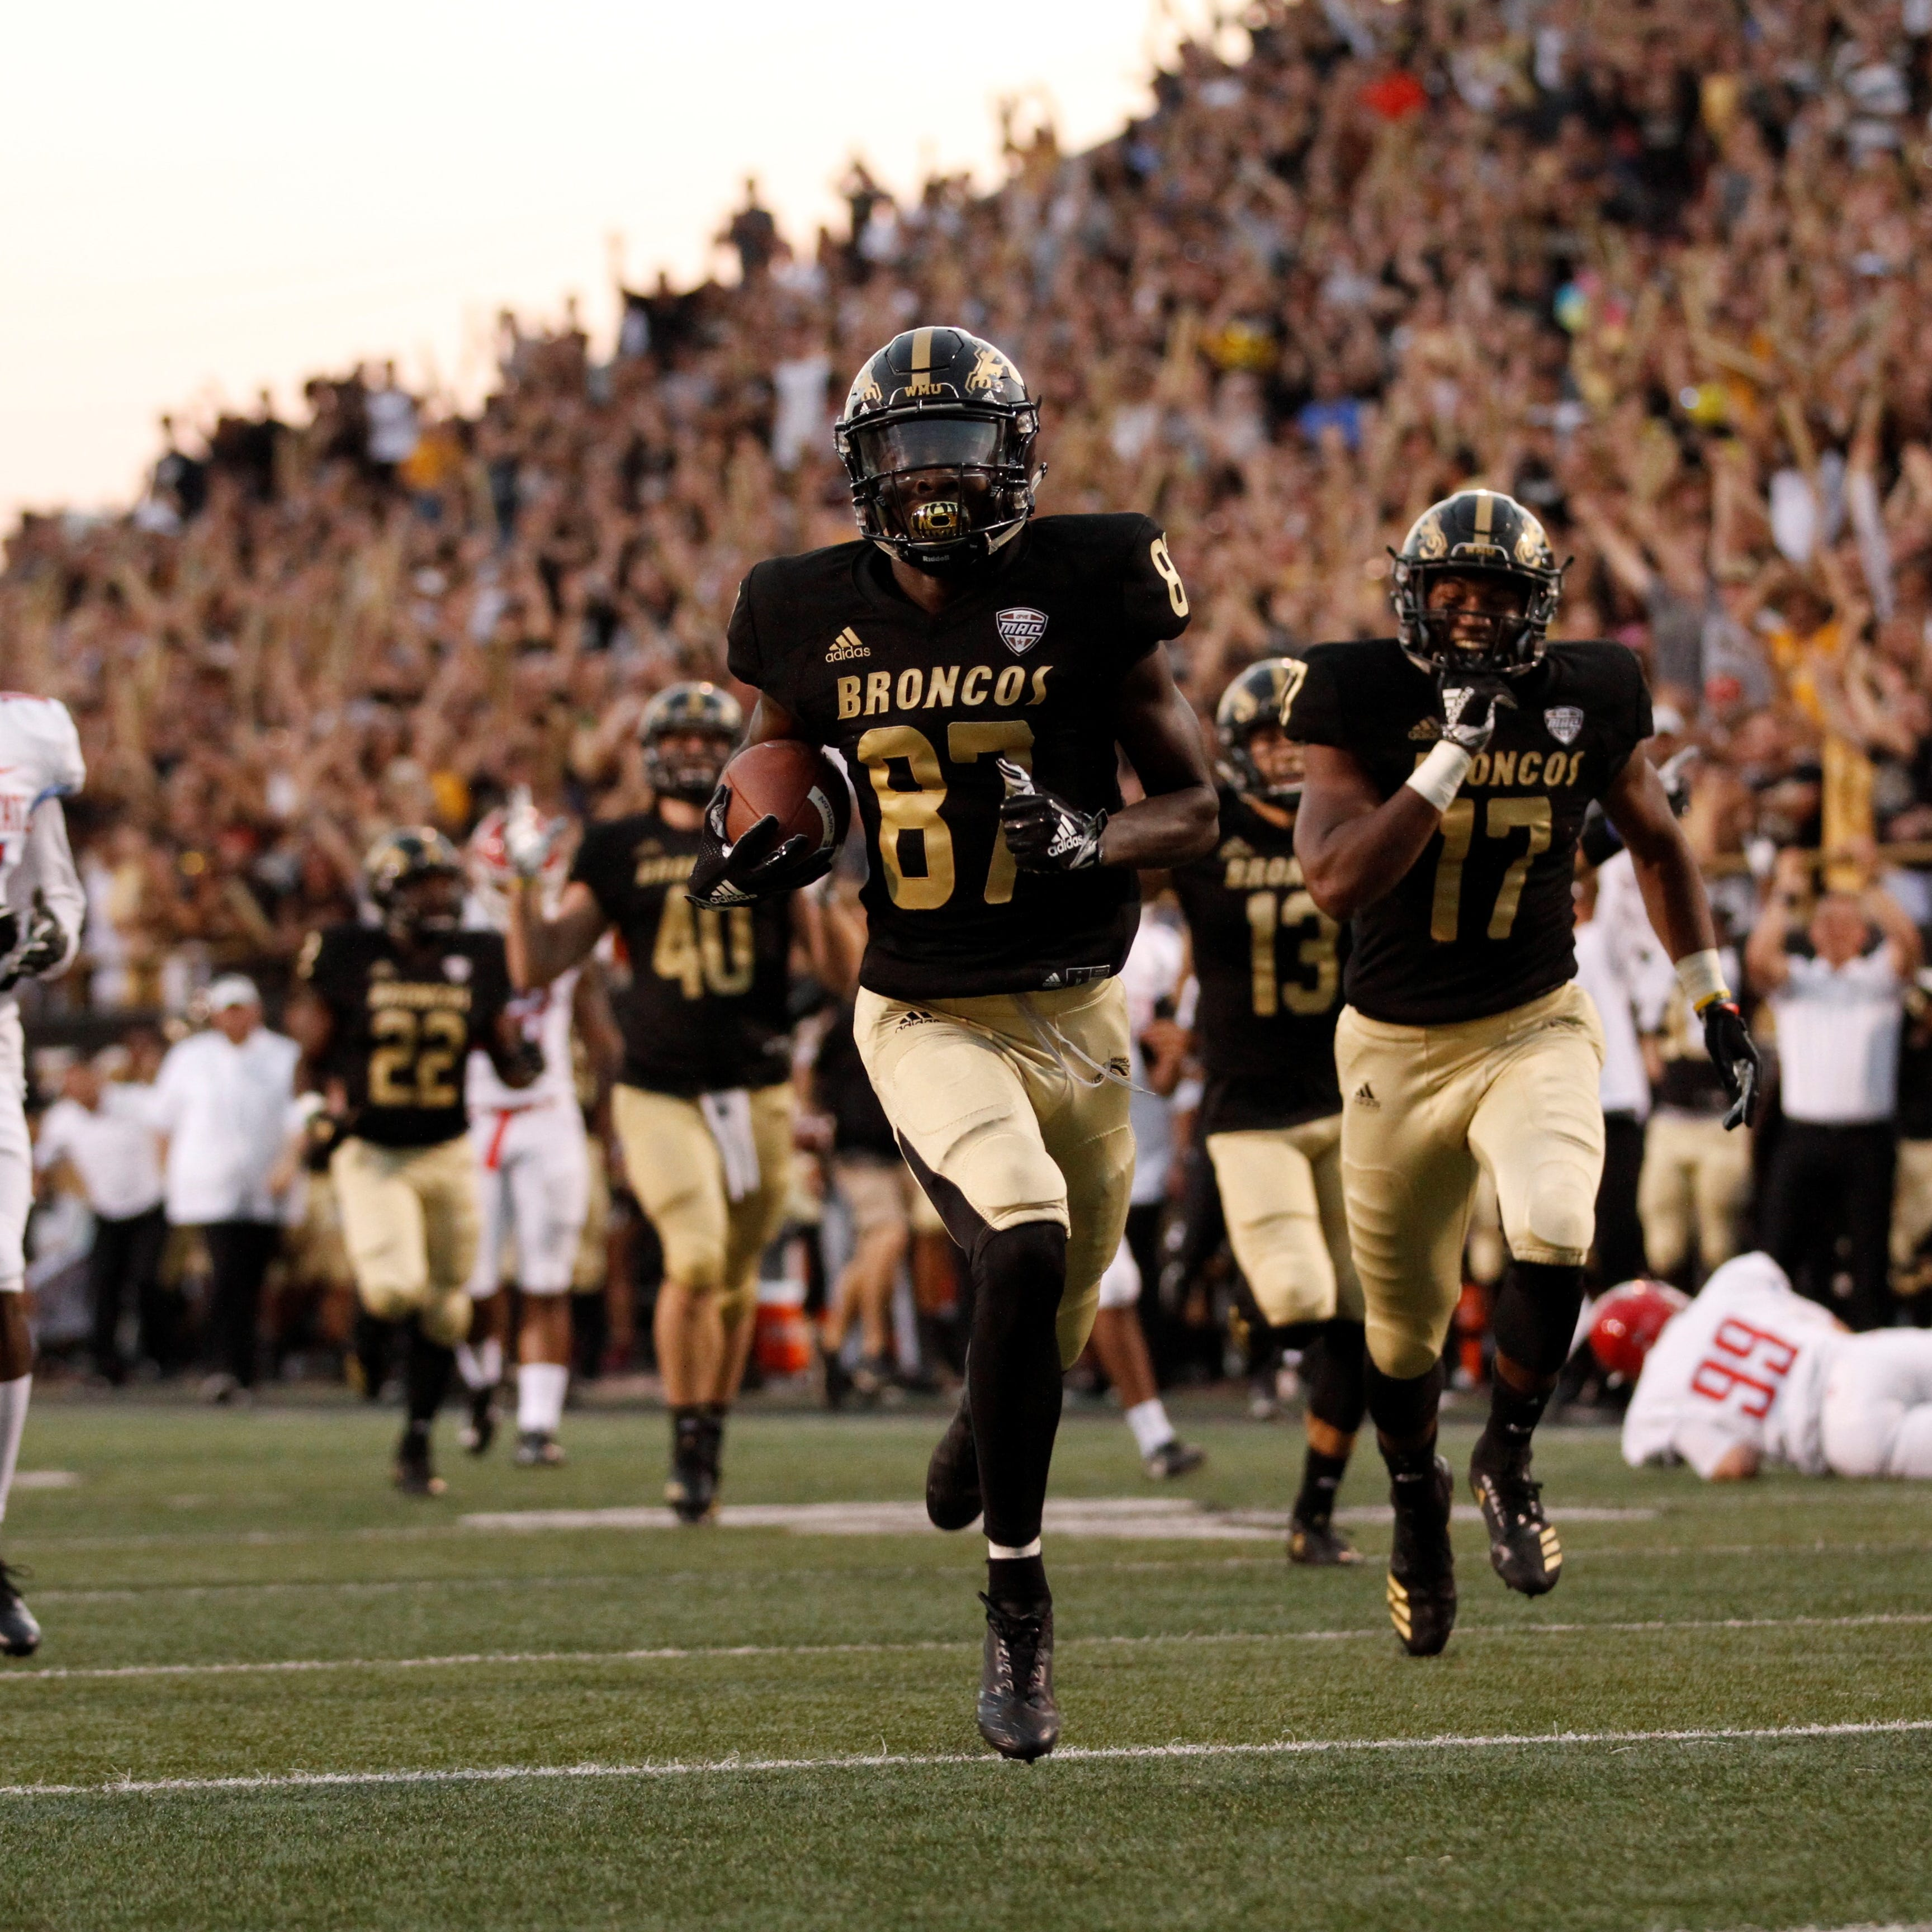 Western Michigan football: 5 things we learned vs. Delaware State